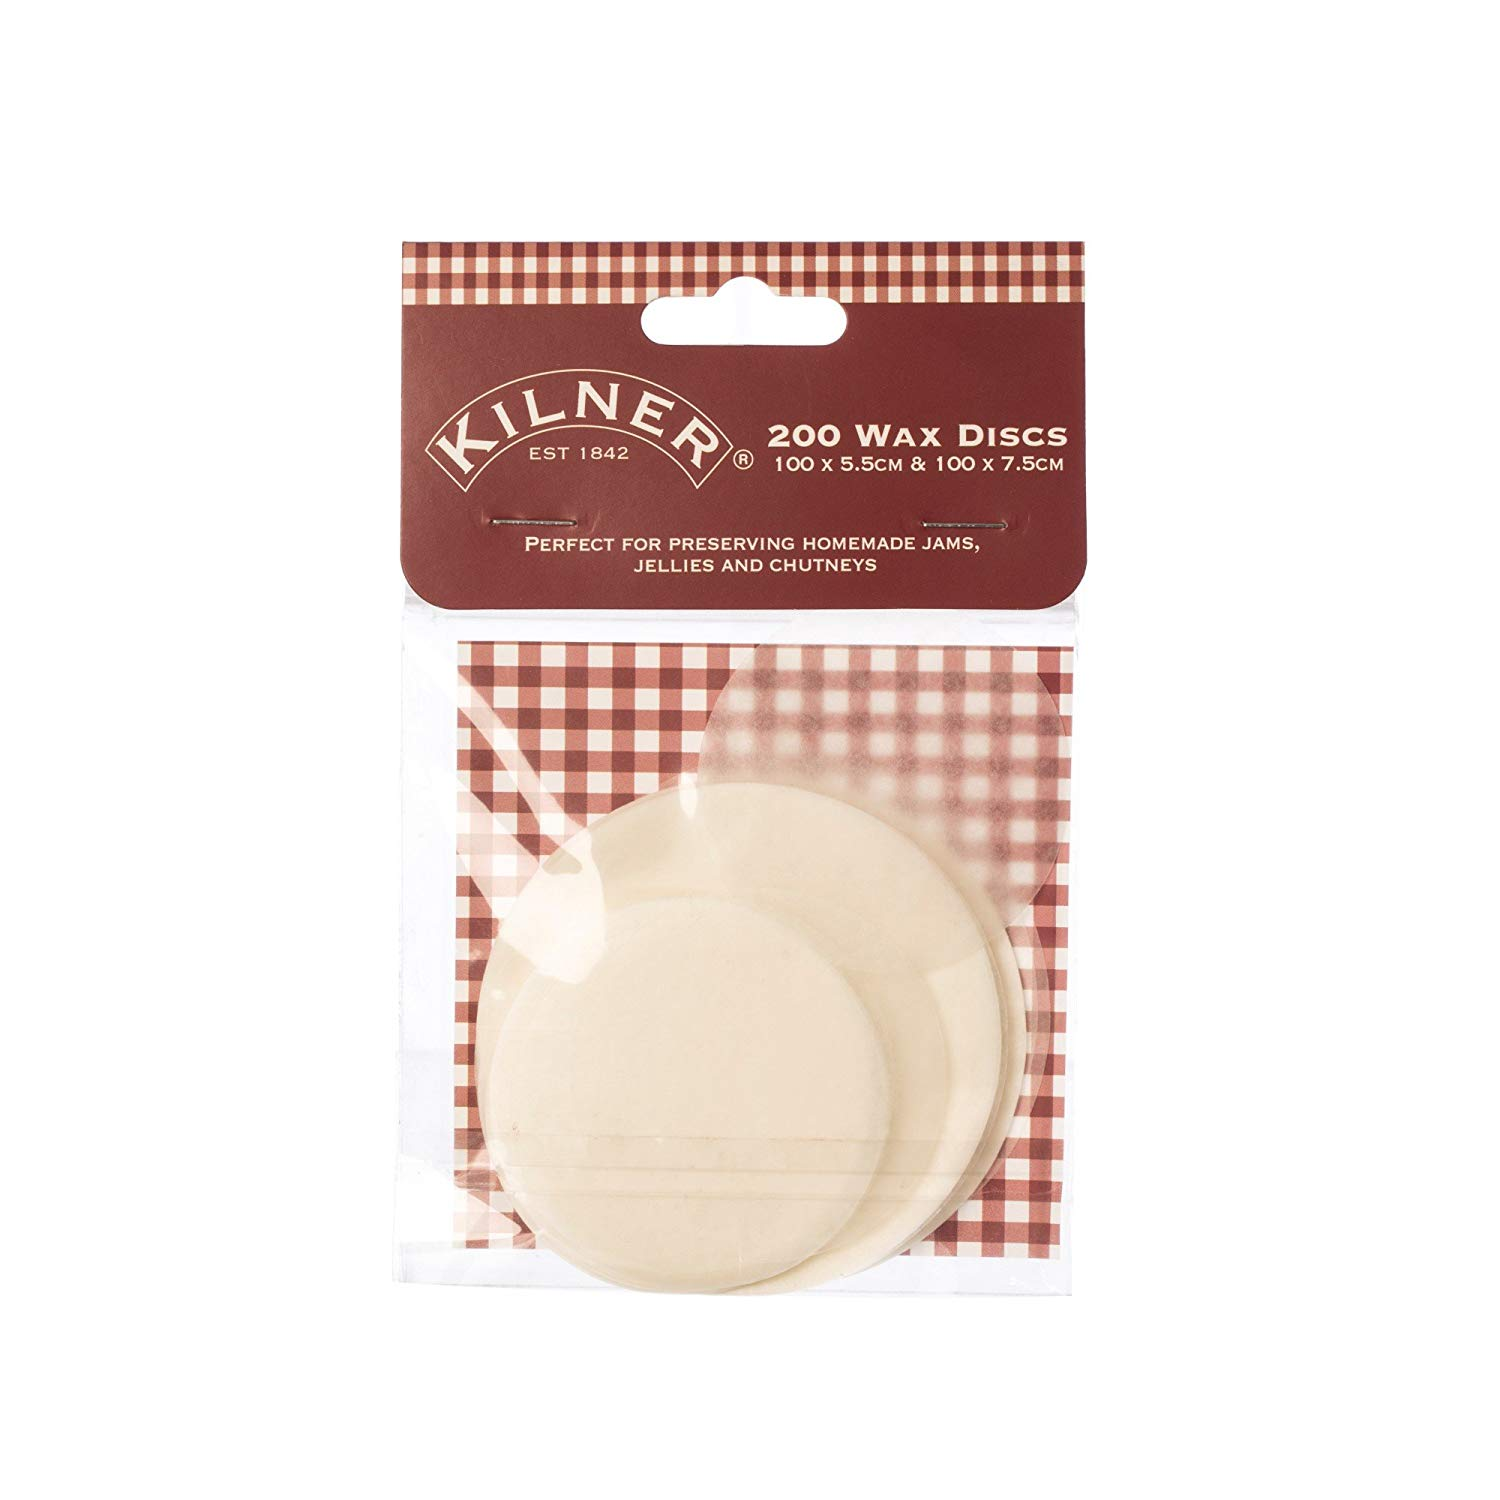 Kilner Wax Disks 200pk